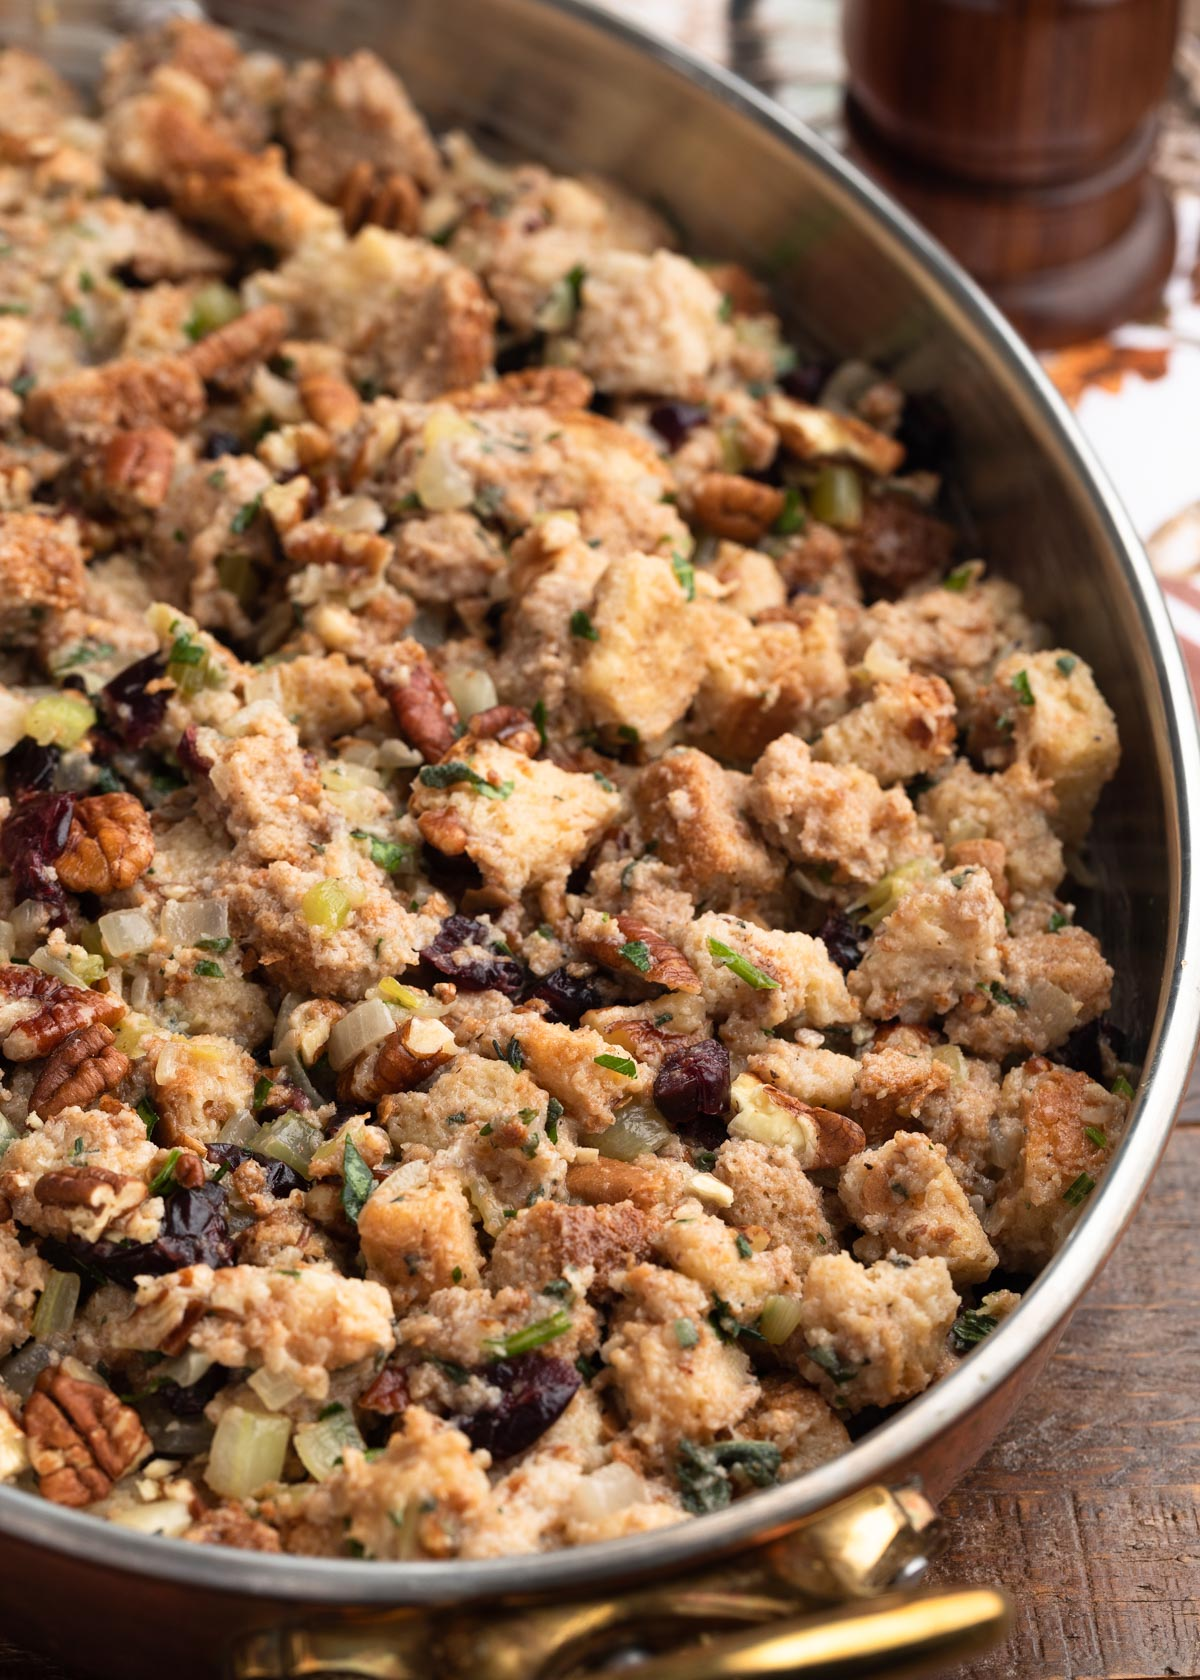 assembled cranberry stuffing in a tin-lined copper gratin pan before baking